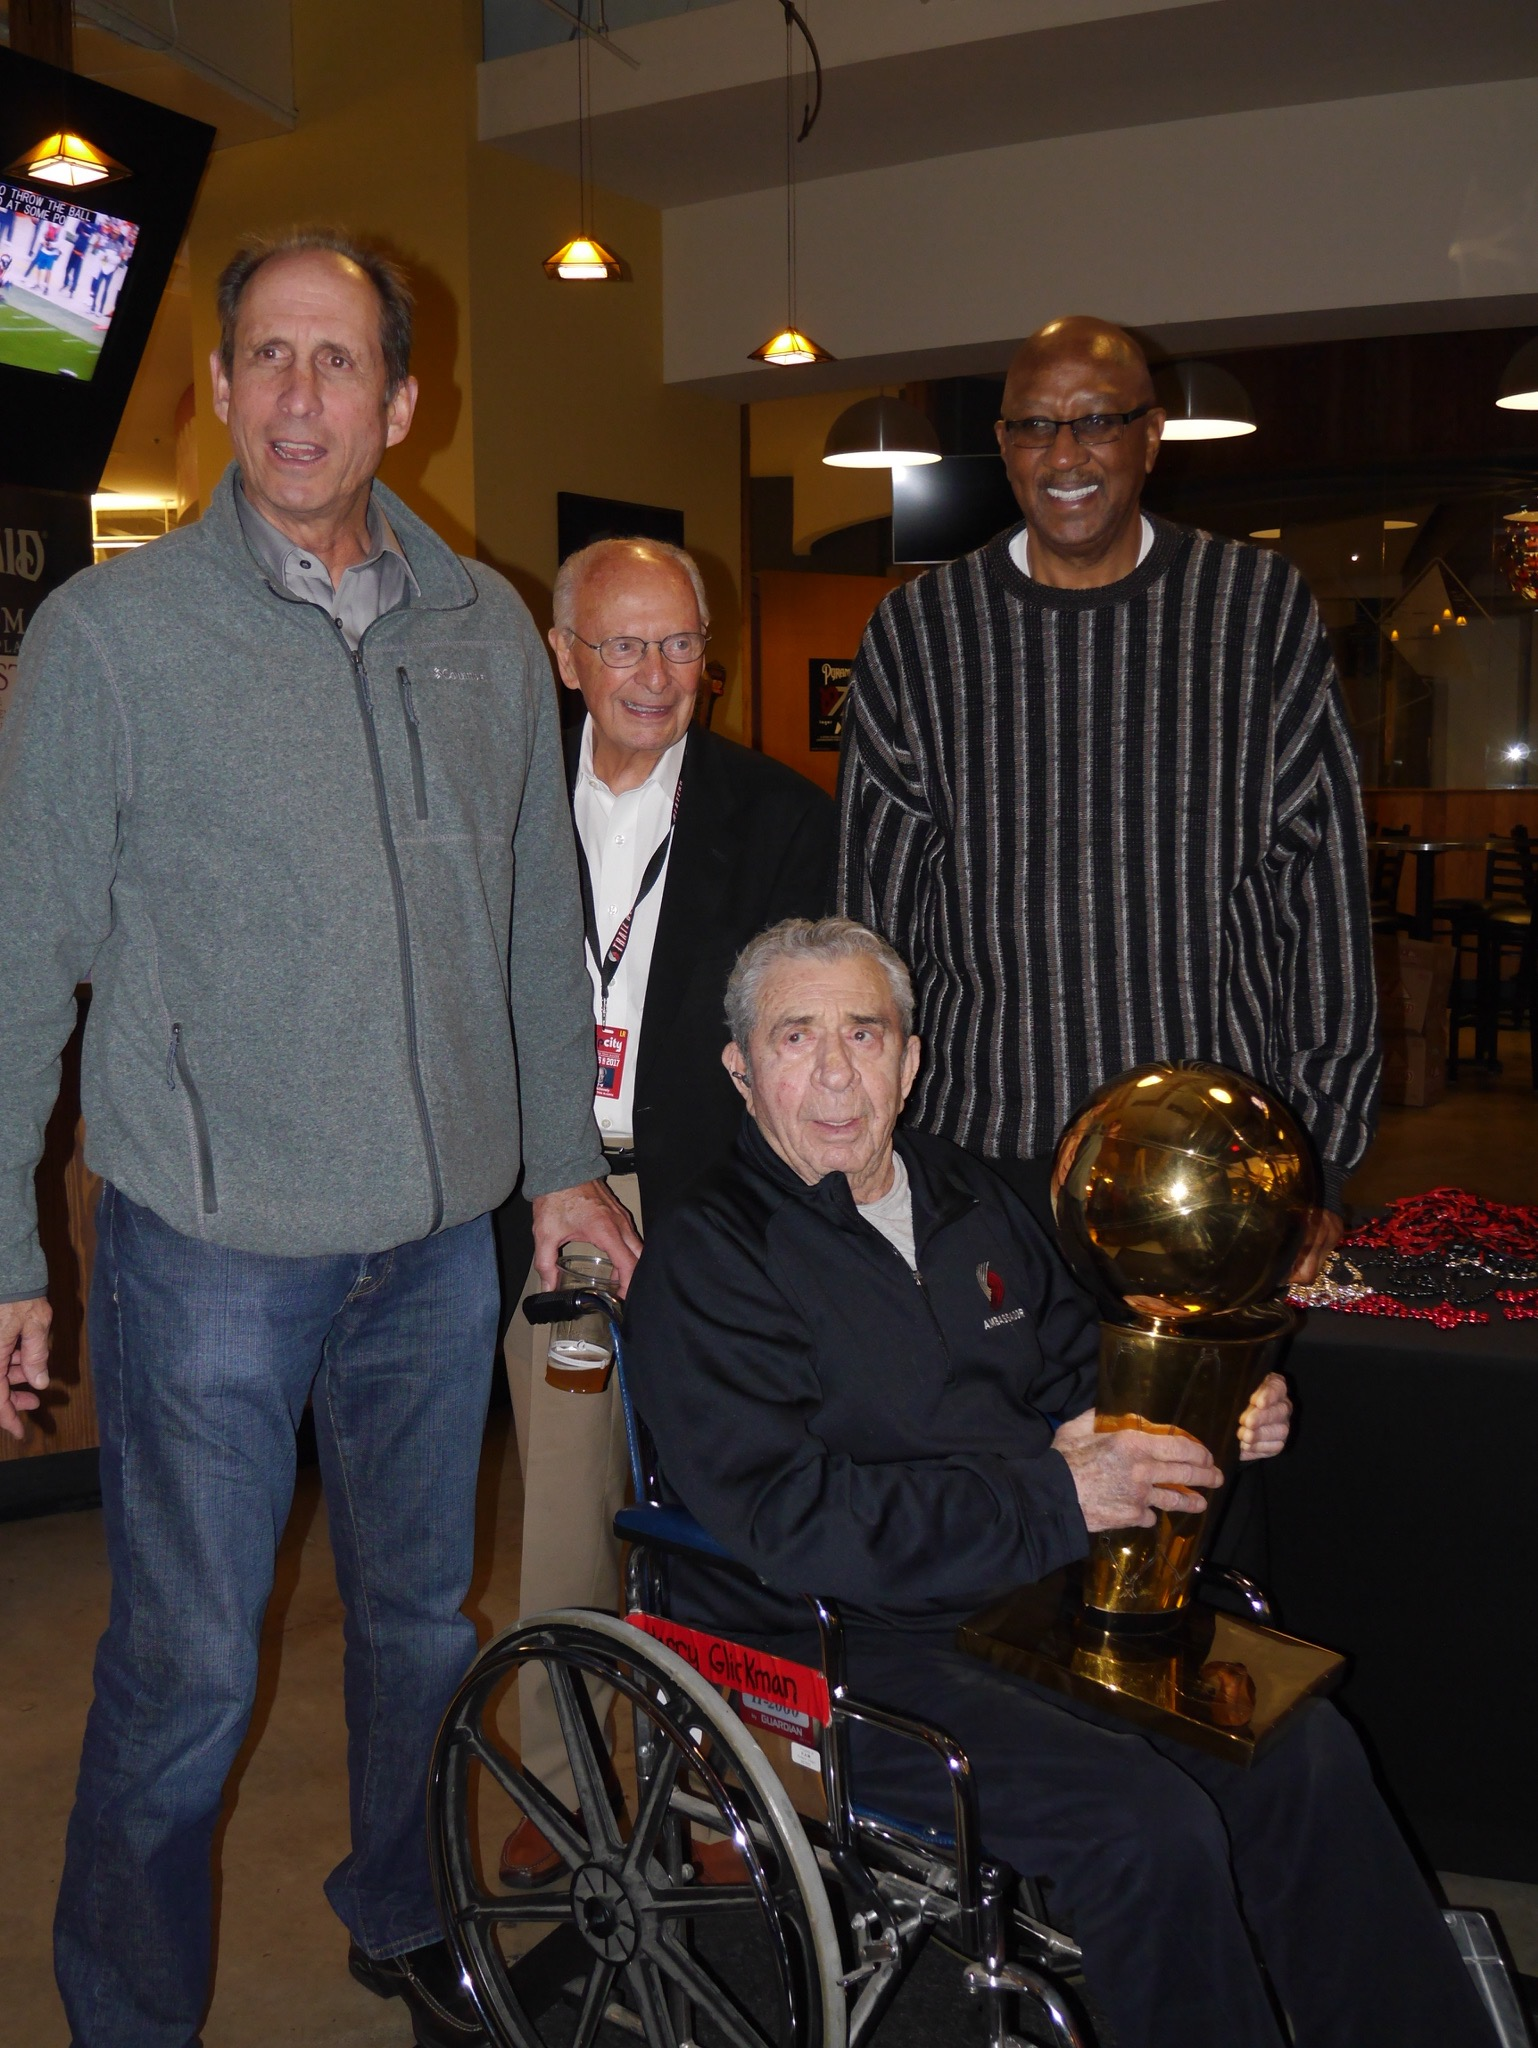 Bob Gross, Bill Schonely, Harry Glickman and Lloyd Neal proudly holding the 1977 Portland Trail Blazers NBA Championship trophy. (photo by Cat Stelzer)